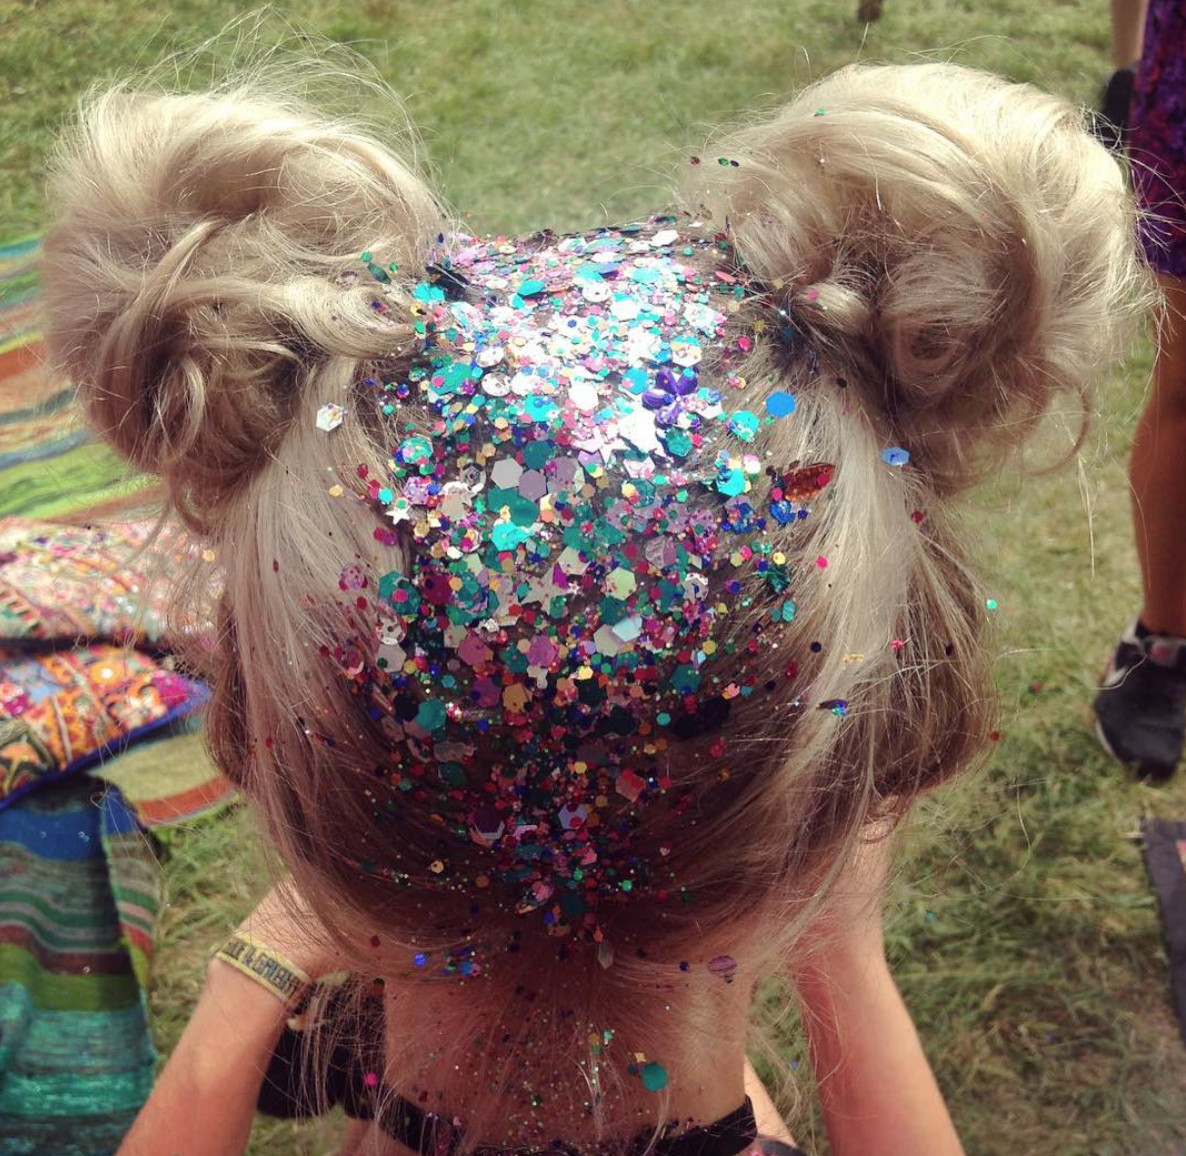 THE GYPSY SHRINES TOP 10 GLITTER LOOKS OF 2016 The